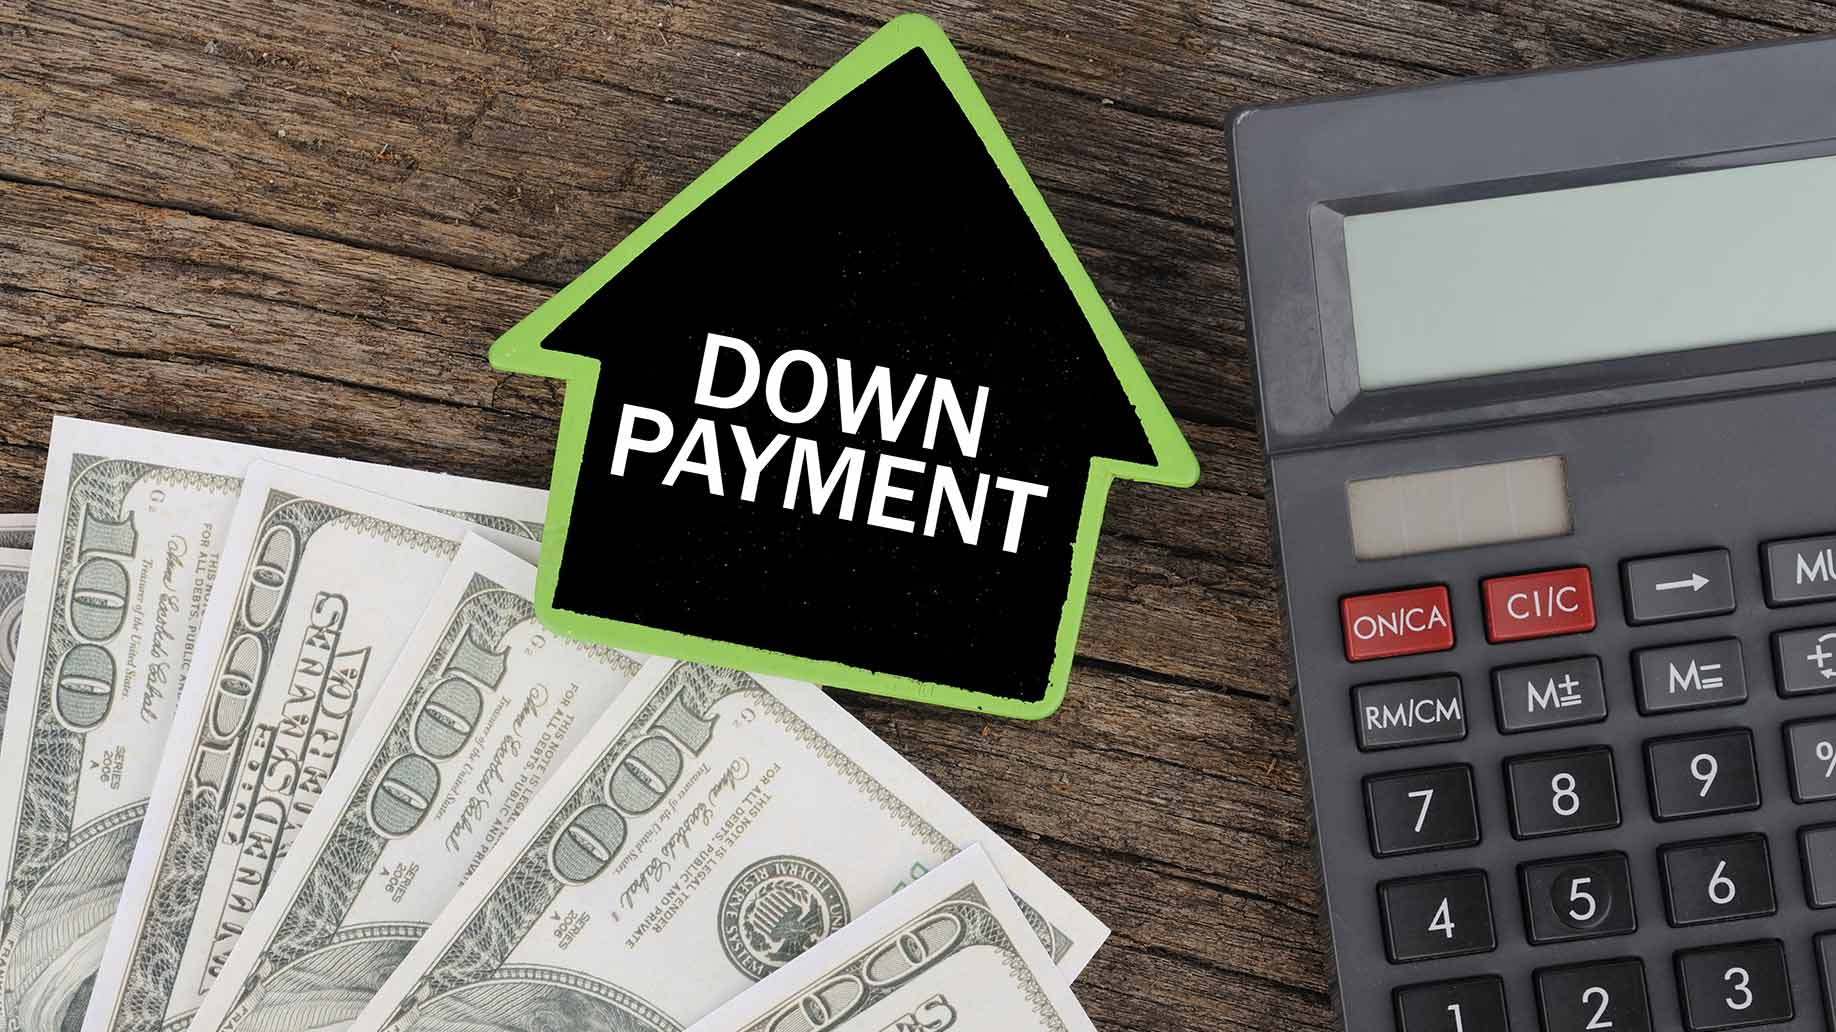 money-down-payment-calculator